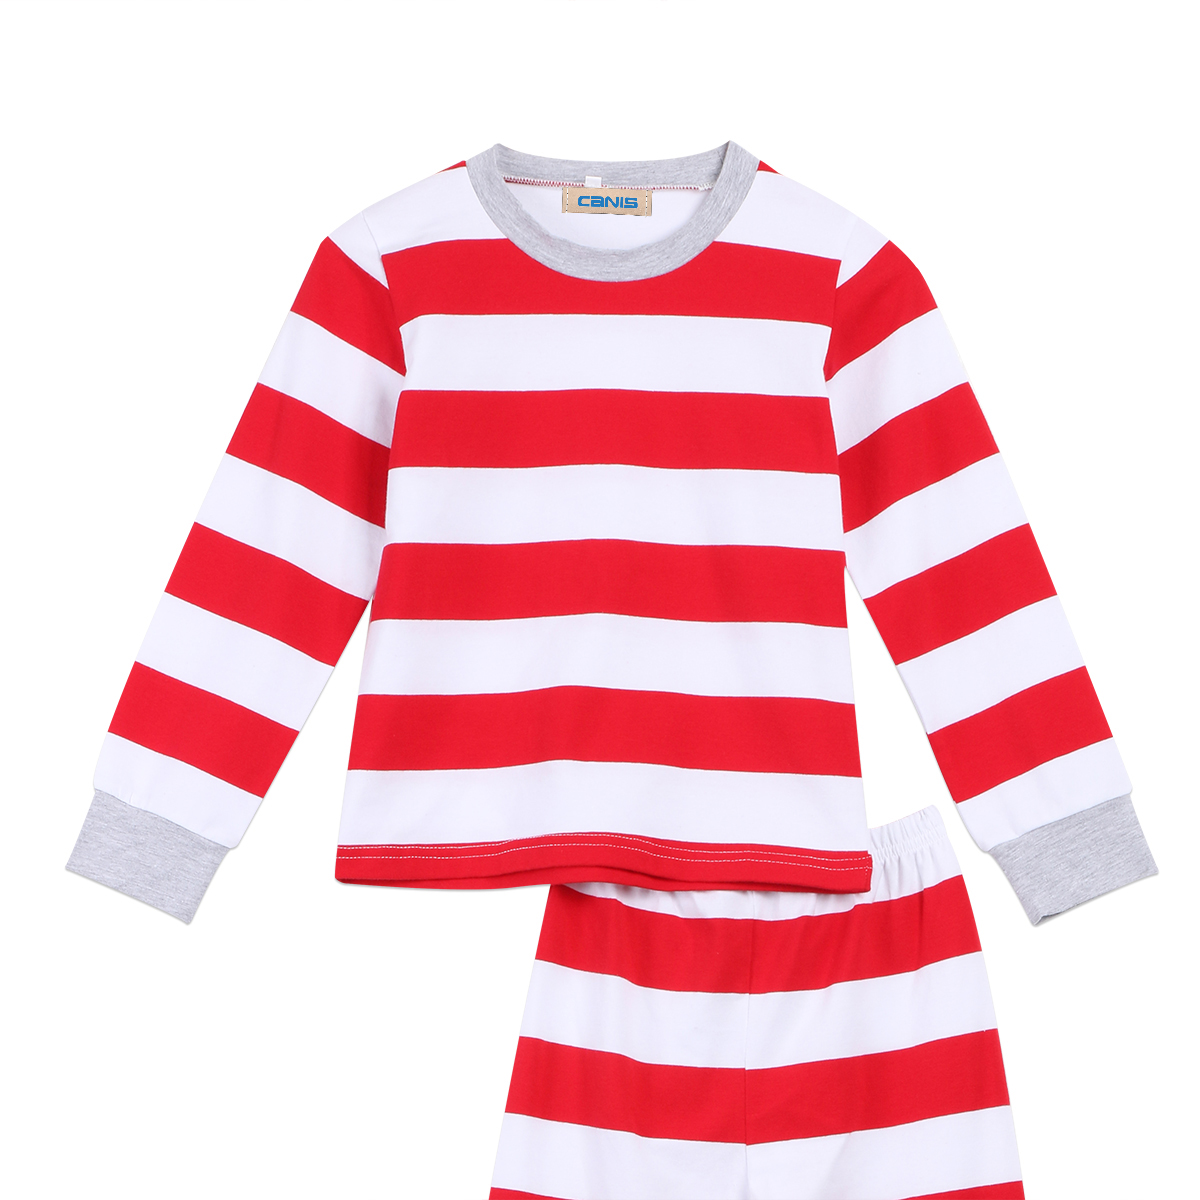 1fe5f88fa1 Family Matching Christmas Pajamas Set Xmas Red Striped Long Sleeve  Sleepwear Nightwear Tops Pants Outfits Clothes-in Matching Family Outfits  from Mother ...